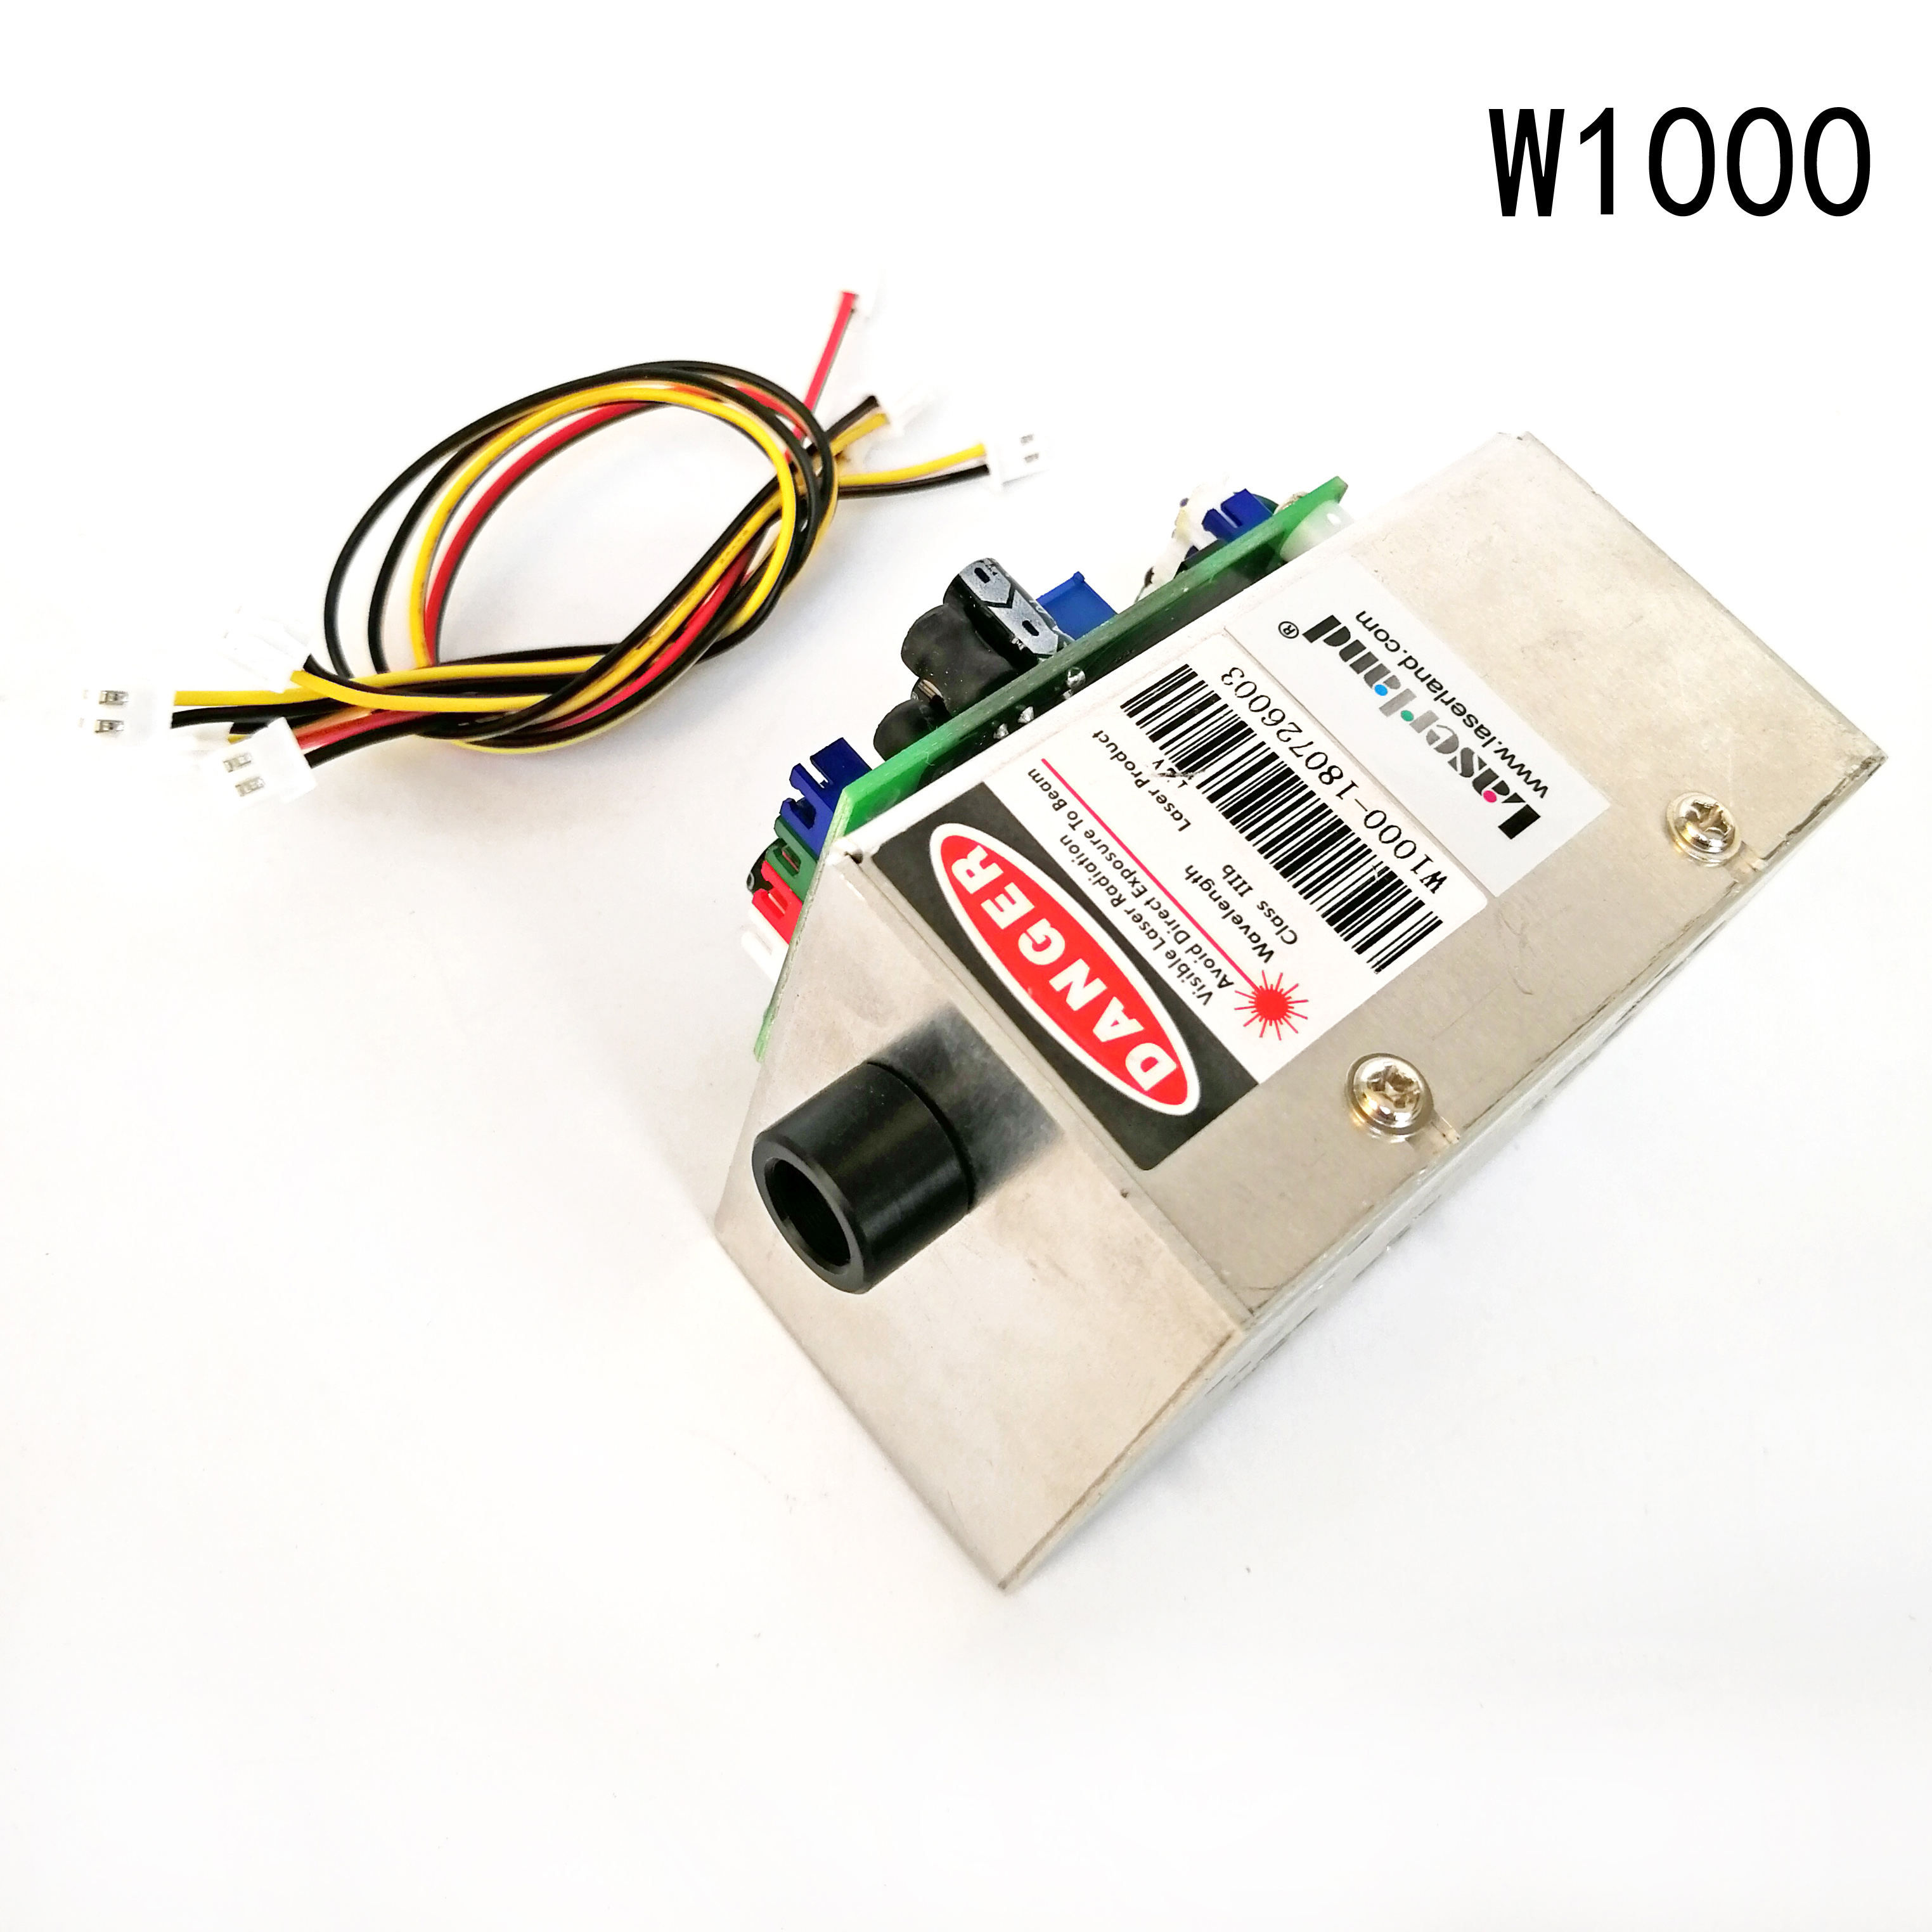 GB 1W Laser Module Red 638nm 180mw Green 505nm 200mw Blue 450nm 620mw Combined Laser Module